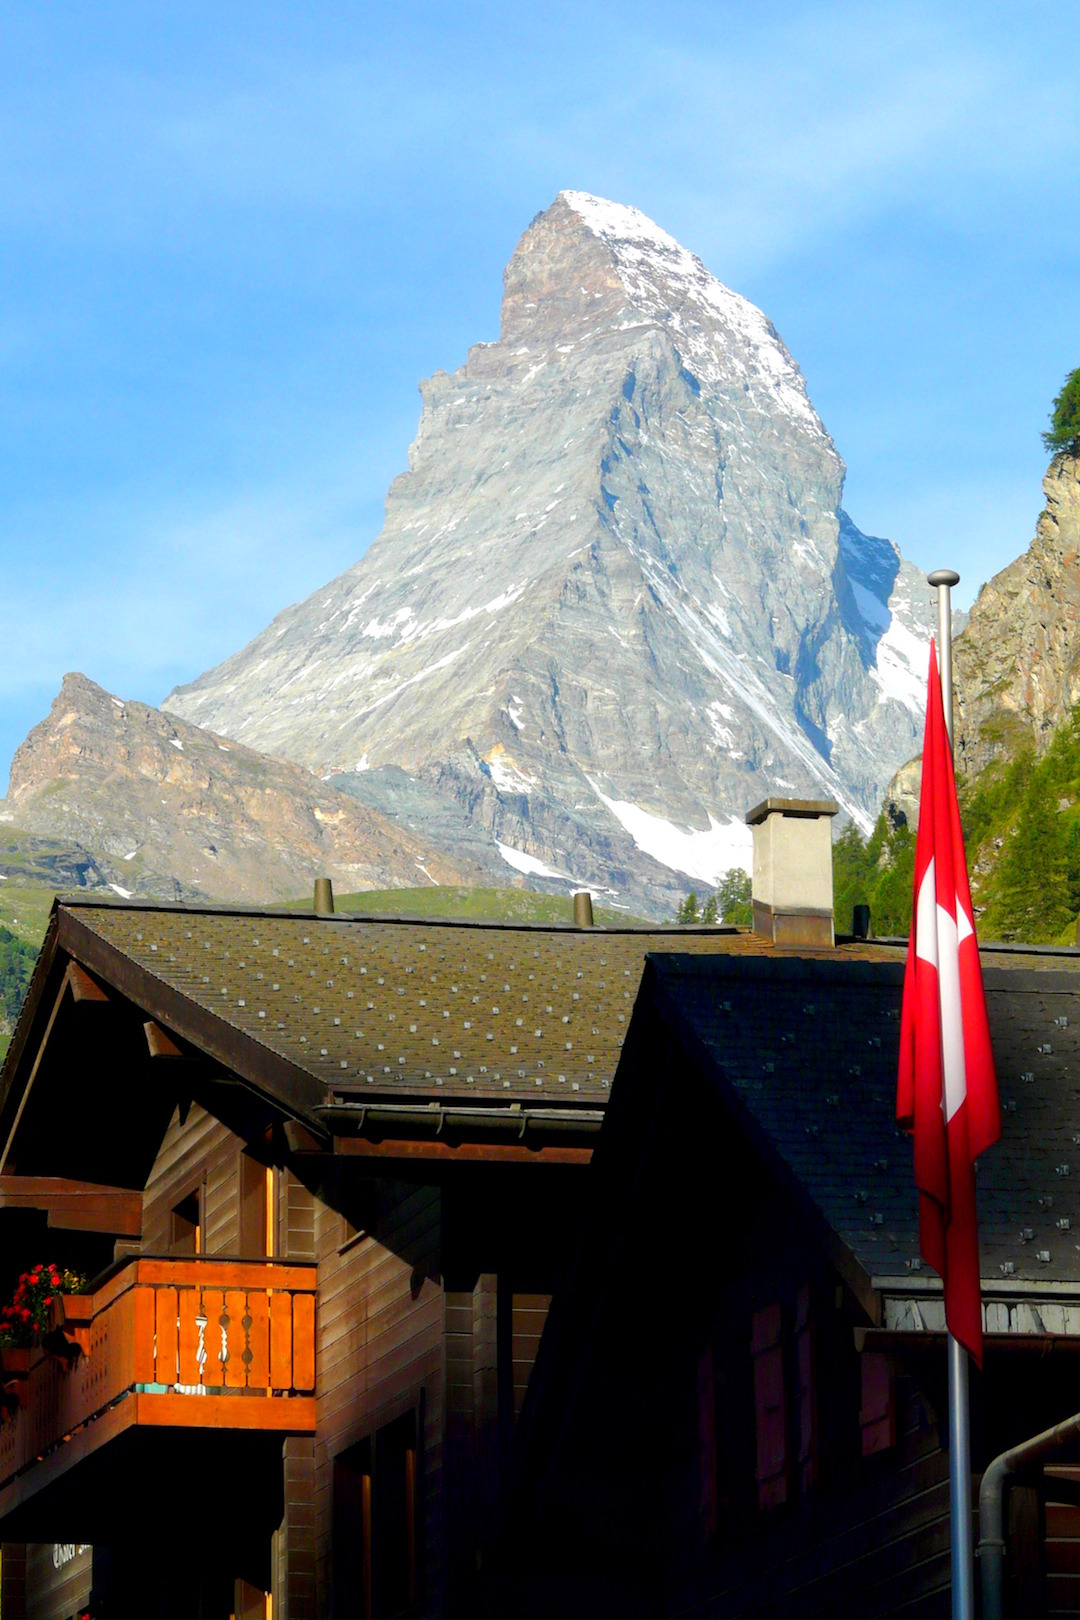 Matterhorn's mountain viewed from Zermatt in Switzerland